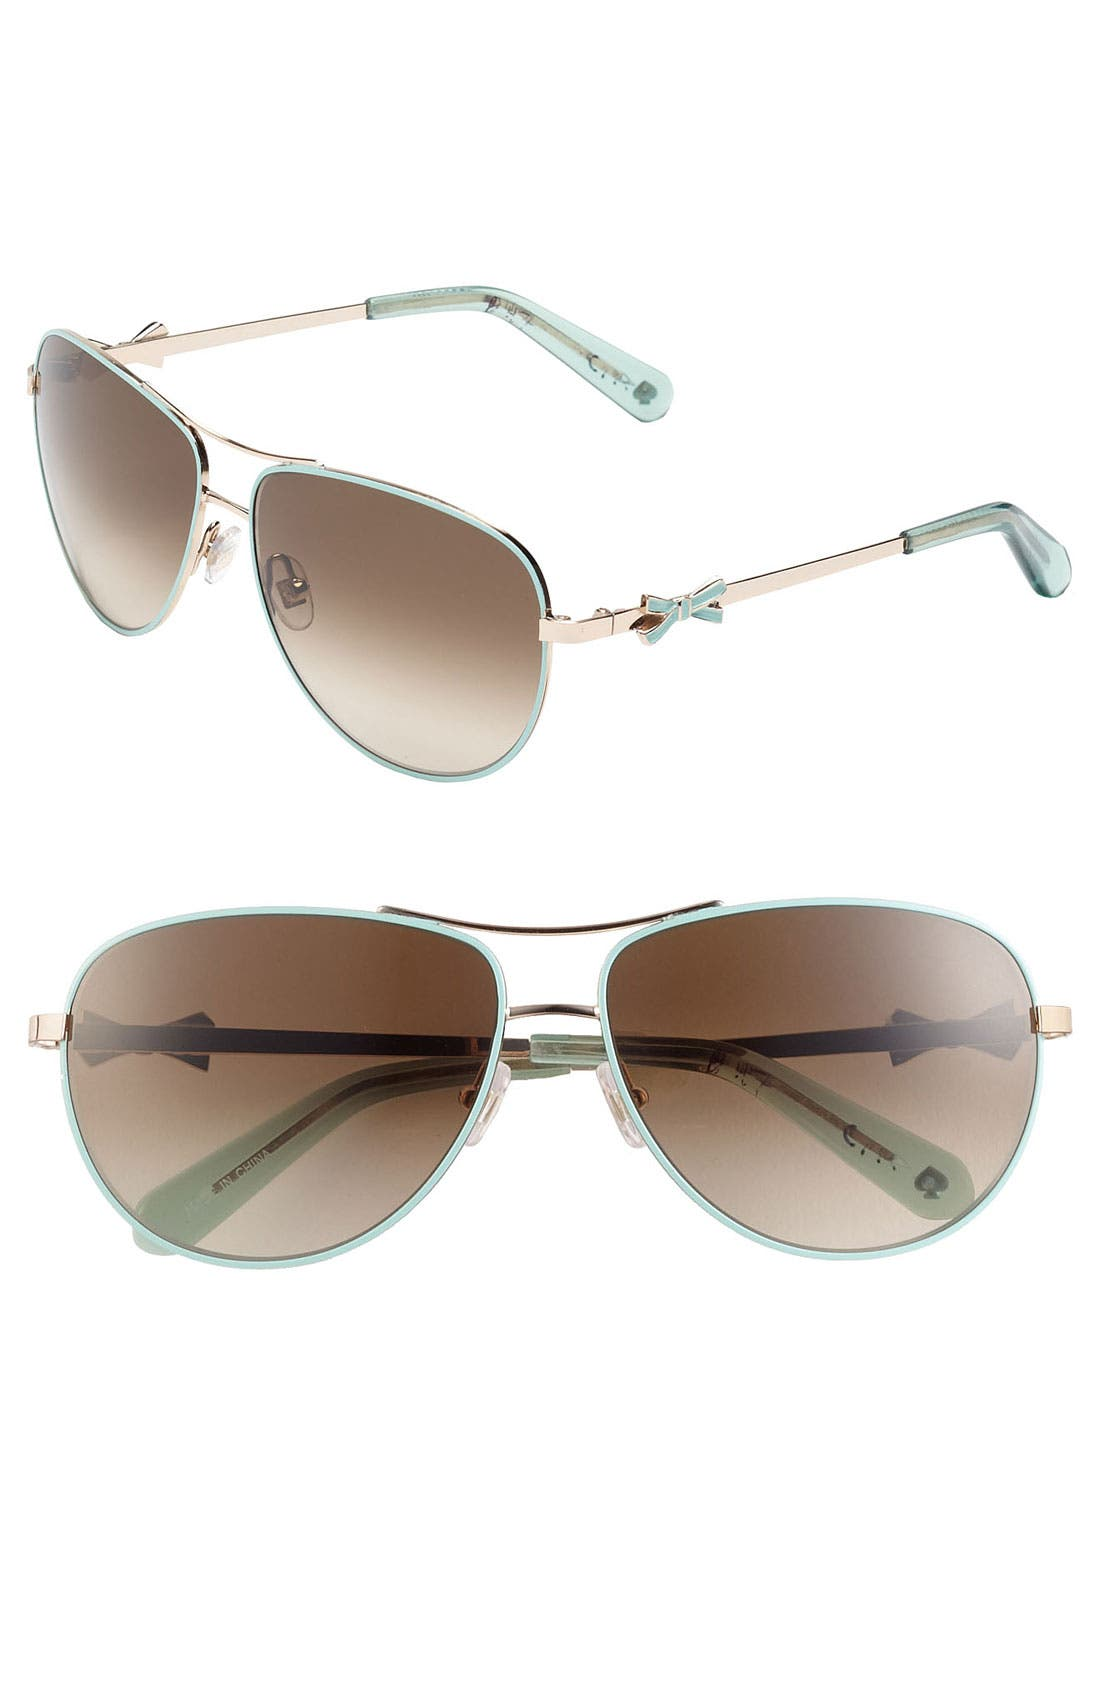 Alternate Image 1 Selected - kate spade new york 'circe' 59mm metal aviator sunglasses